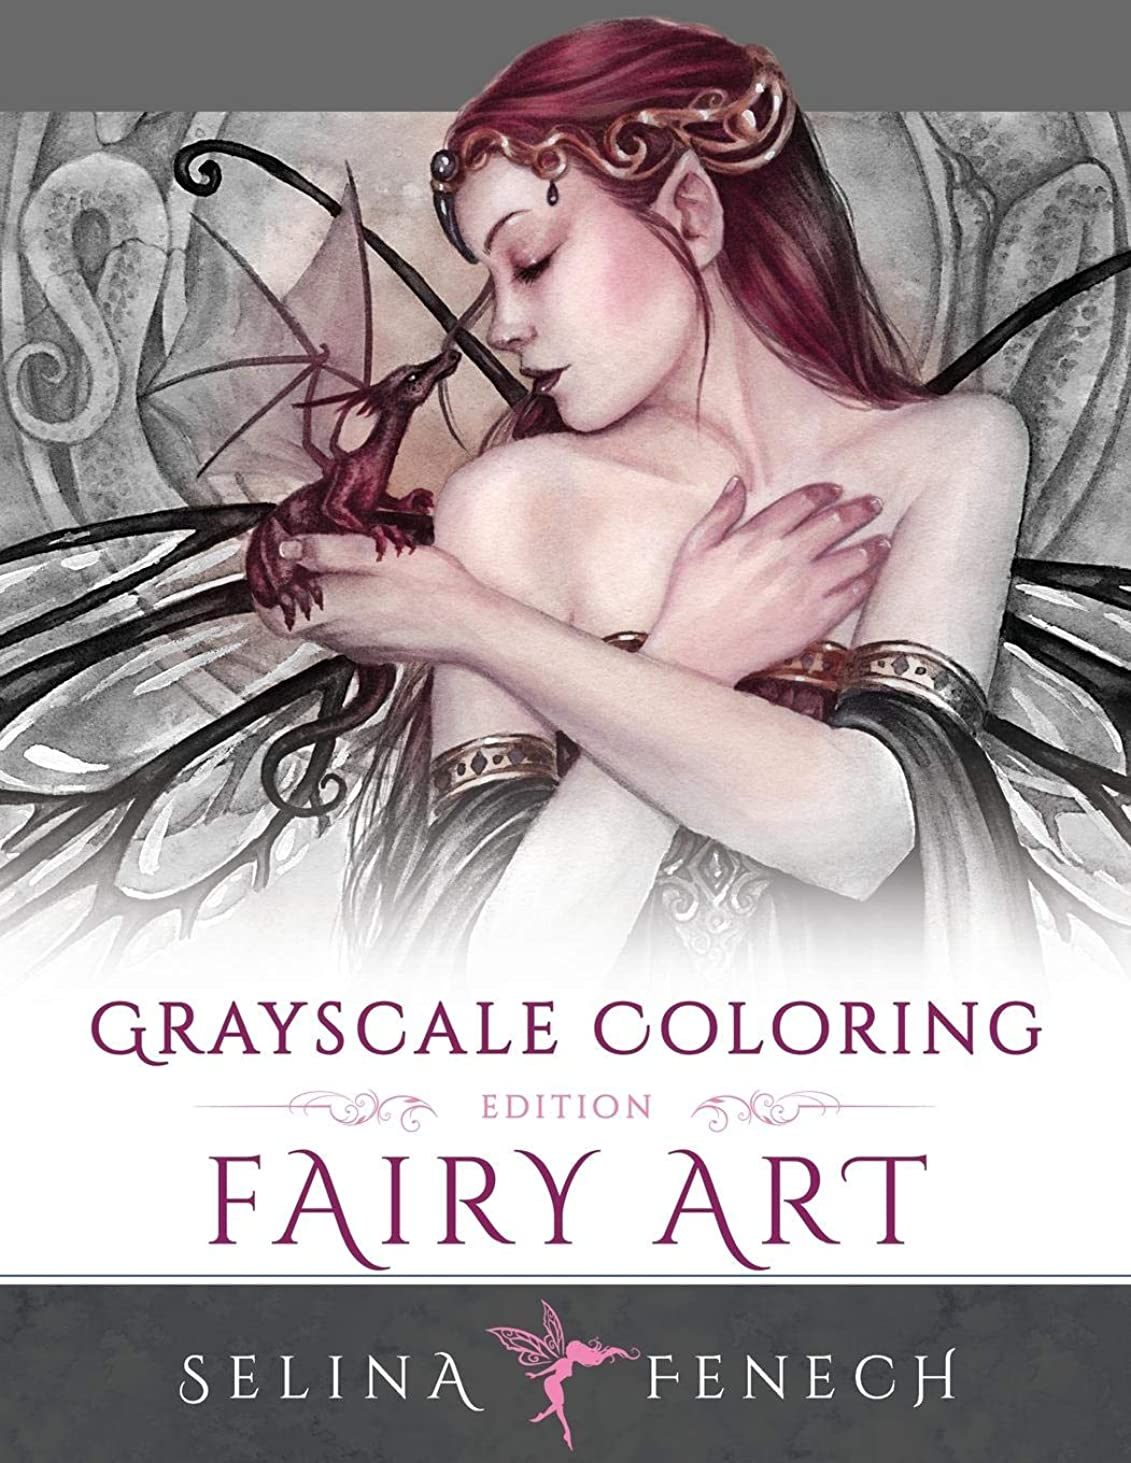 かわす高さ恥ずかしいFairy Art - Grayscale Coloring Edition (Grayscale Coloring Books by Selina)